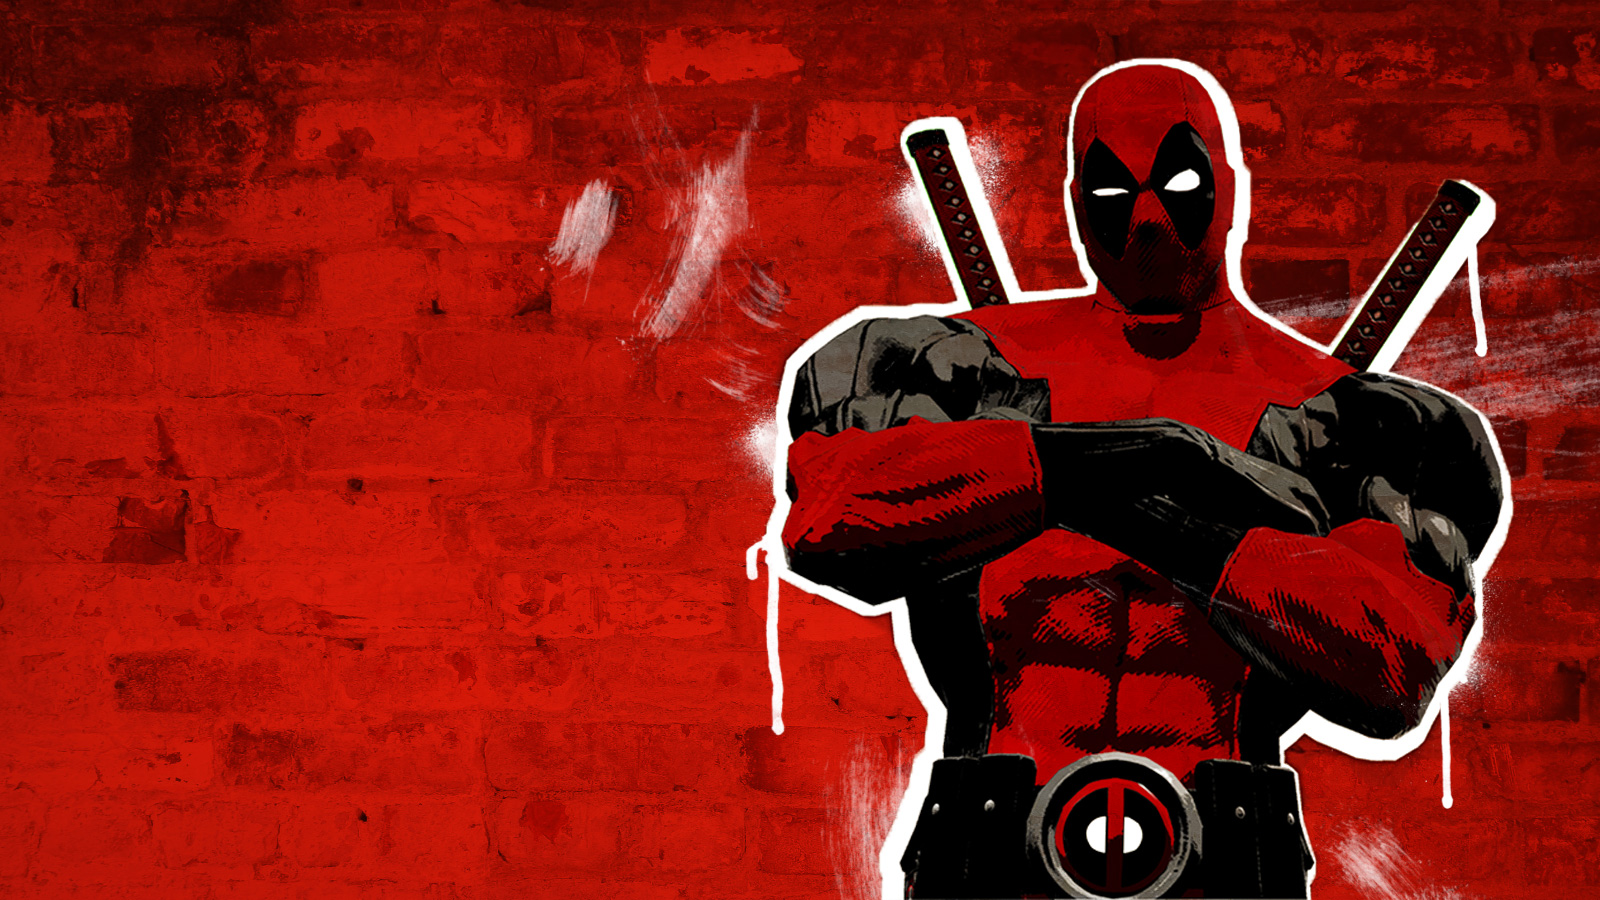 Cool Deadpool Android Wallpaper Fliptronikscom Fliptroniks 1600x900